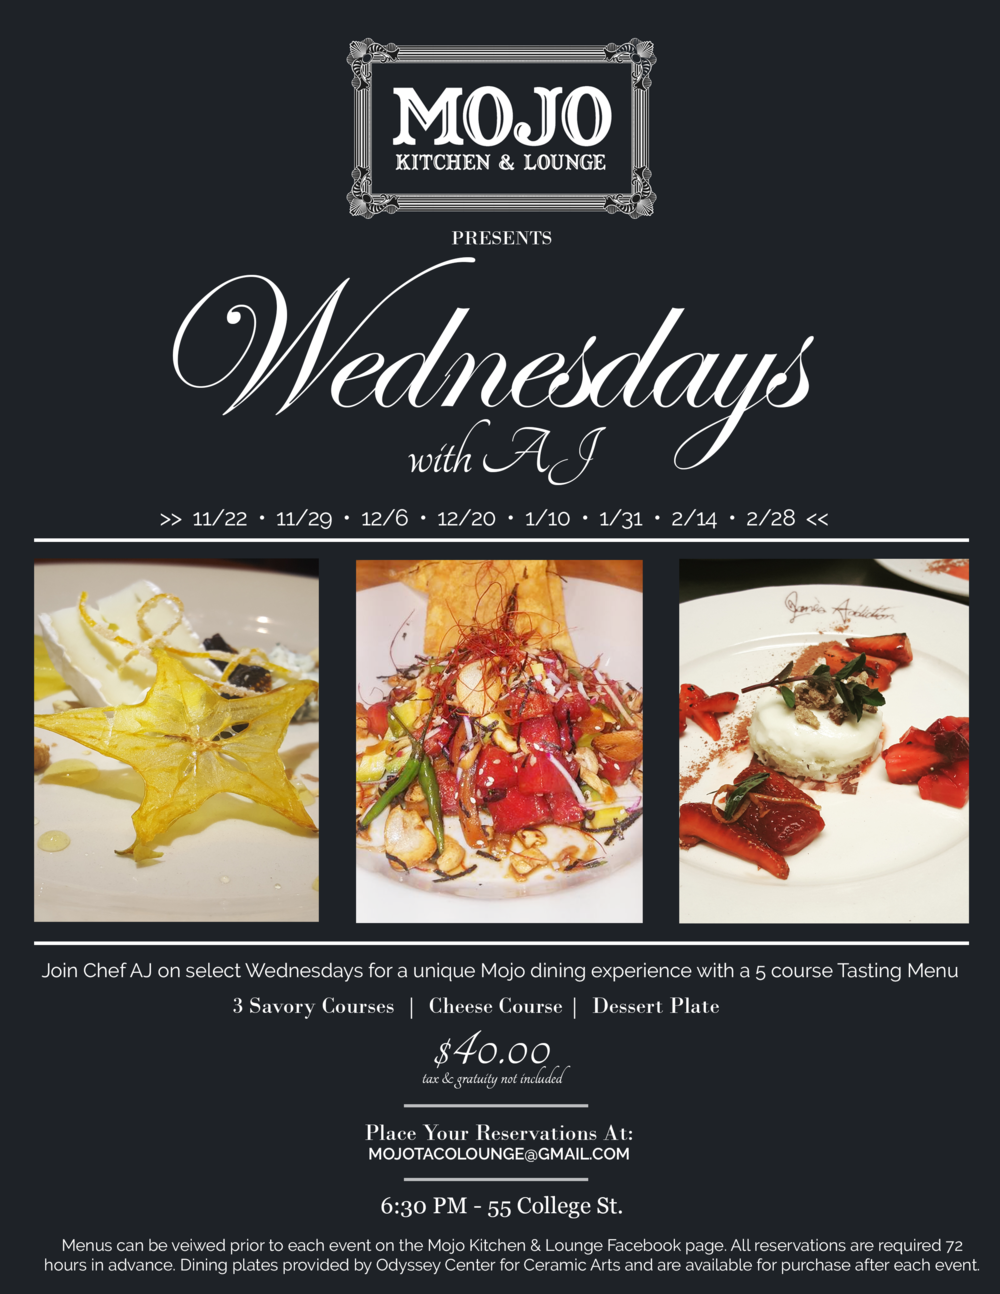 Mojo Kitchen & Lounge - Wednesday's With AJ Flyer